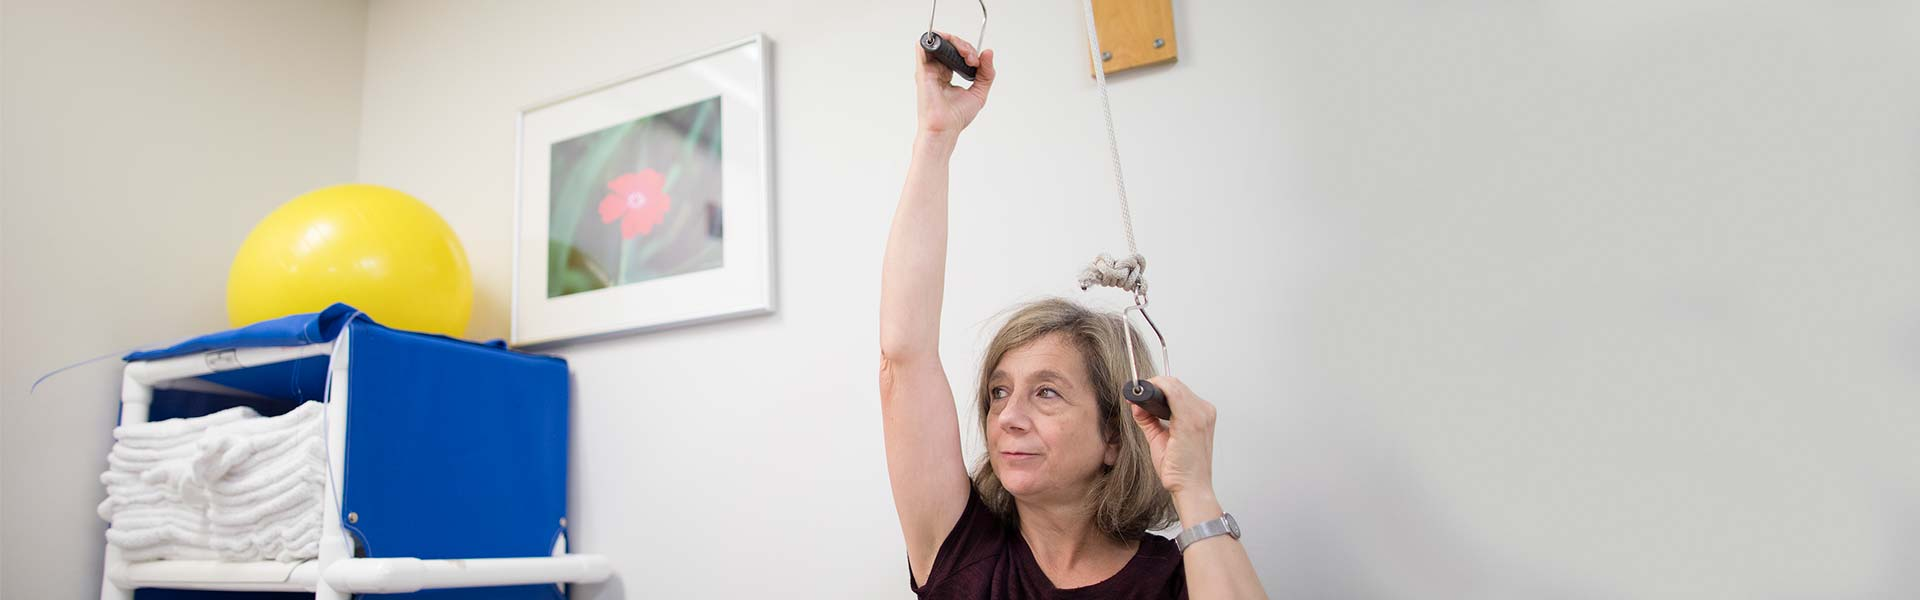 Seated woman works vertical pulleys overhead in exam room